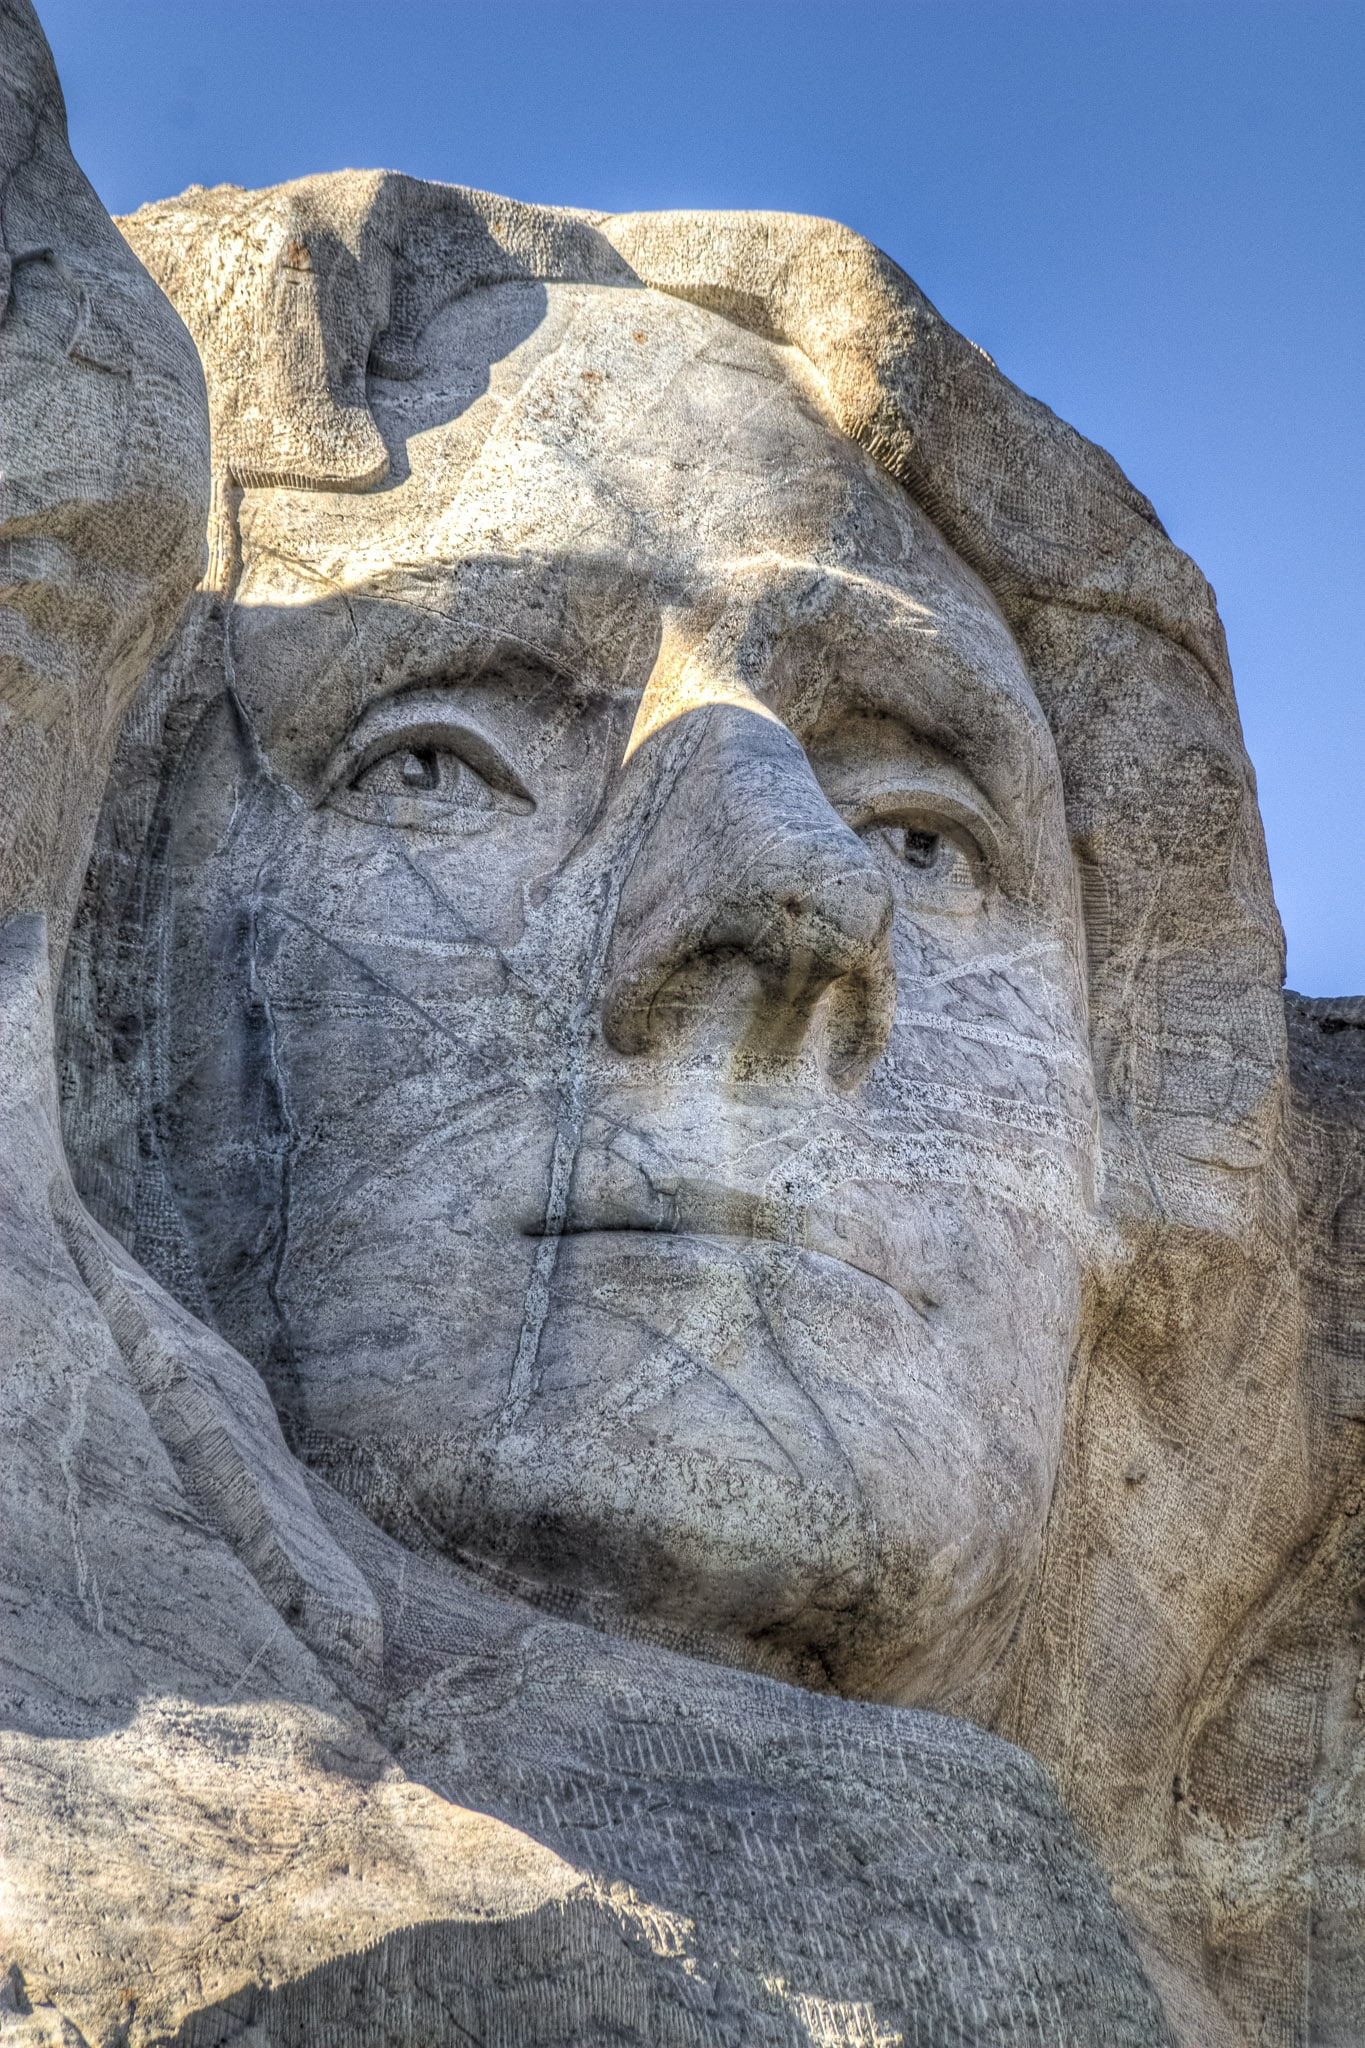 A close-up of the face of President Thomas Jefferson carved into Mt. Rushmore.